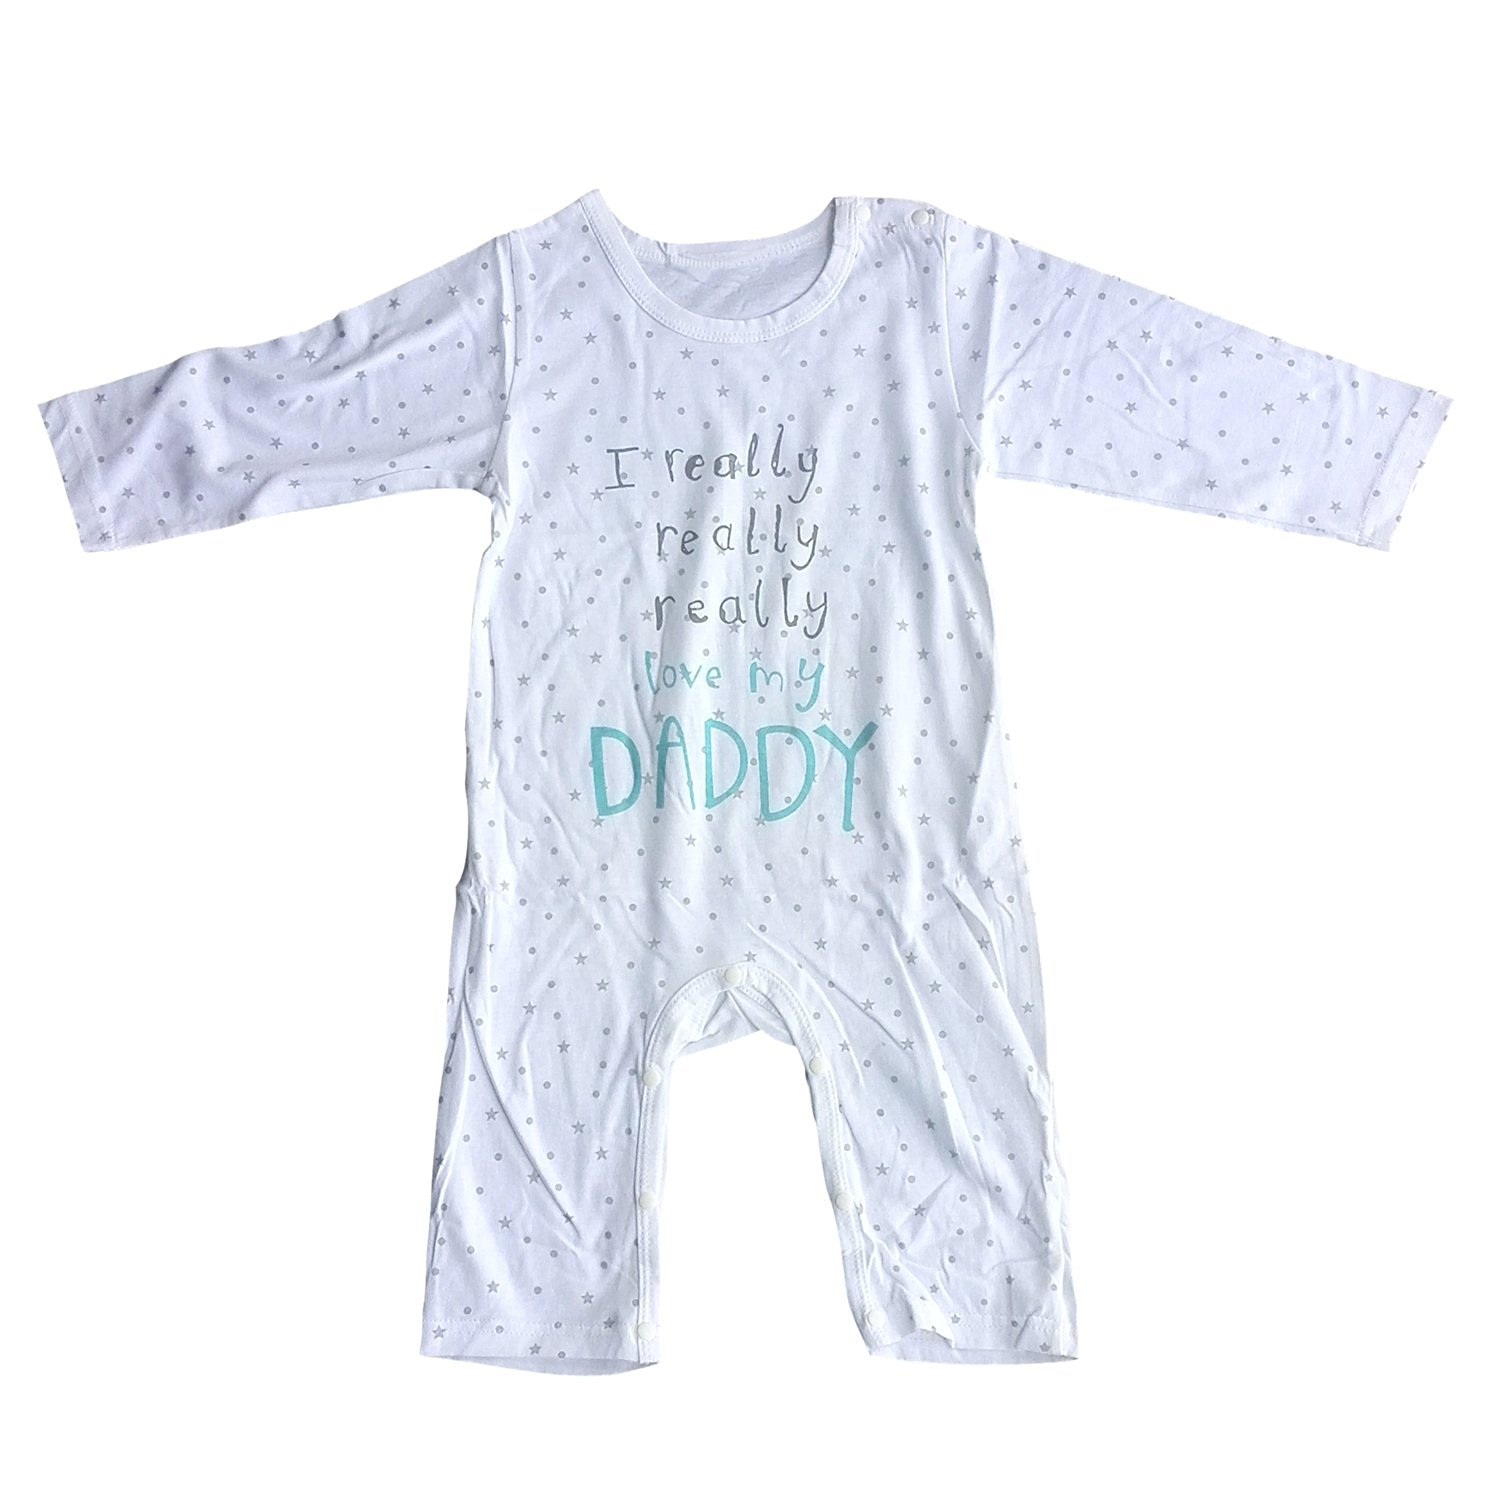 Buy TOOGOO R baby clothing uni baby rompers printed I really